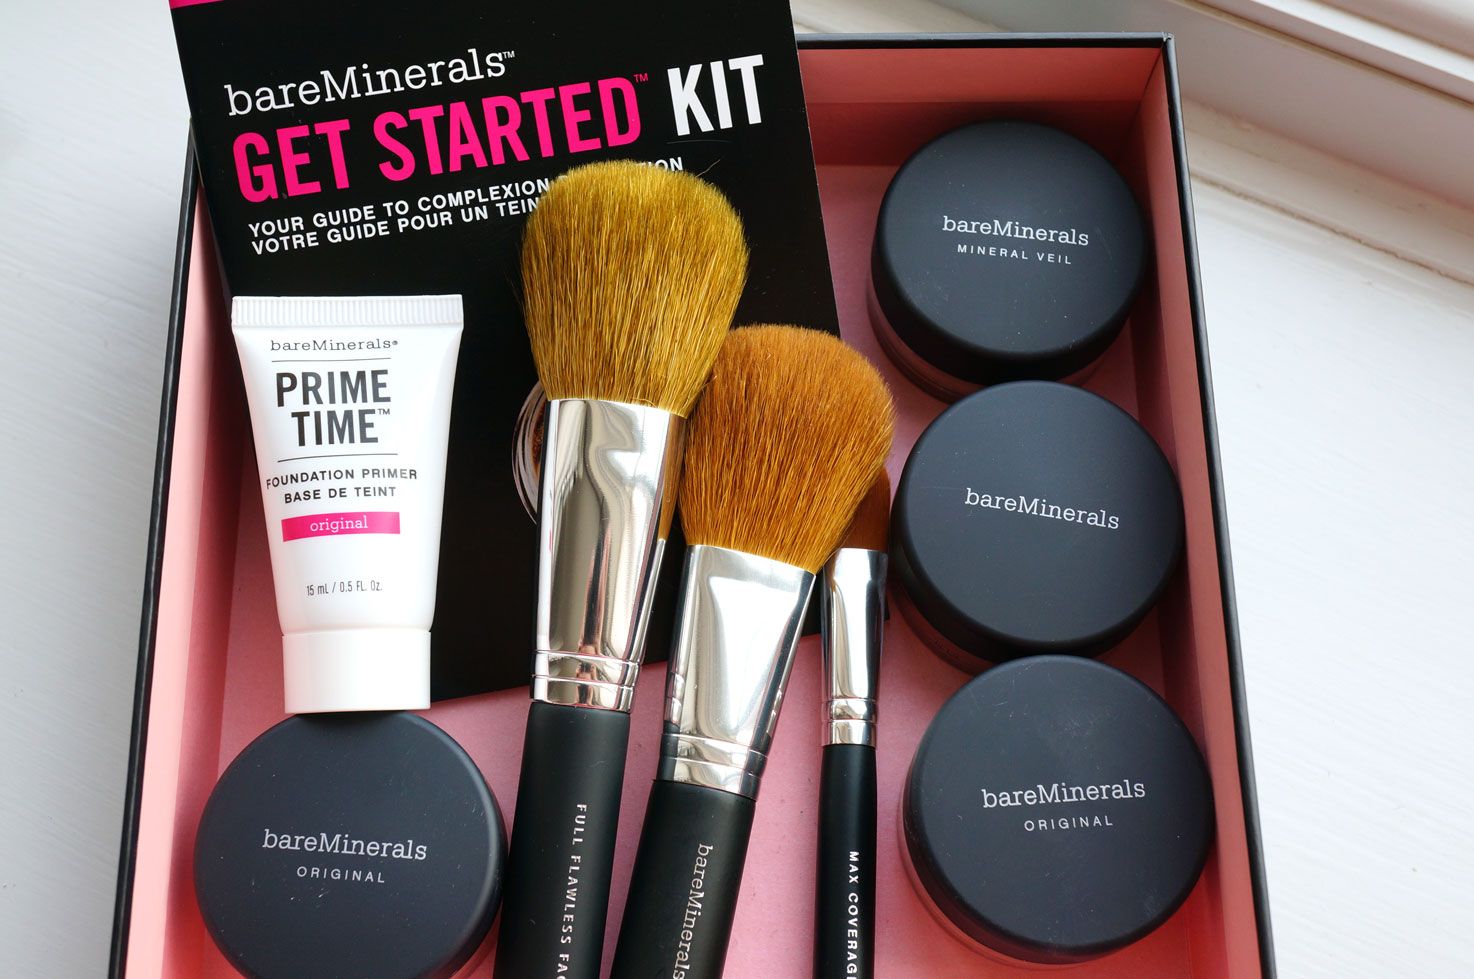 Bare Minerals Get Started Kit in Medium | Review - Thou Shalt Not Covet...